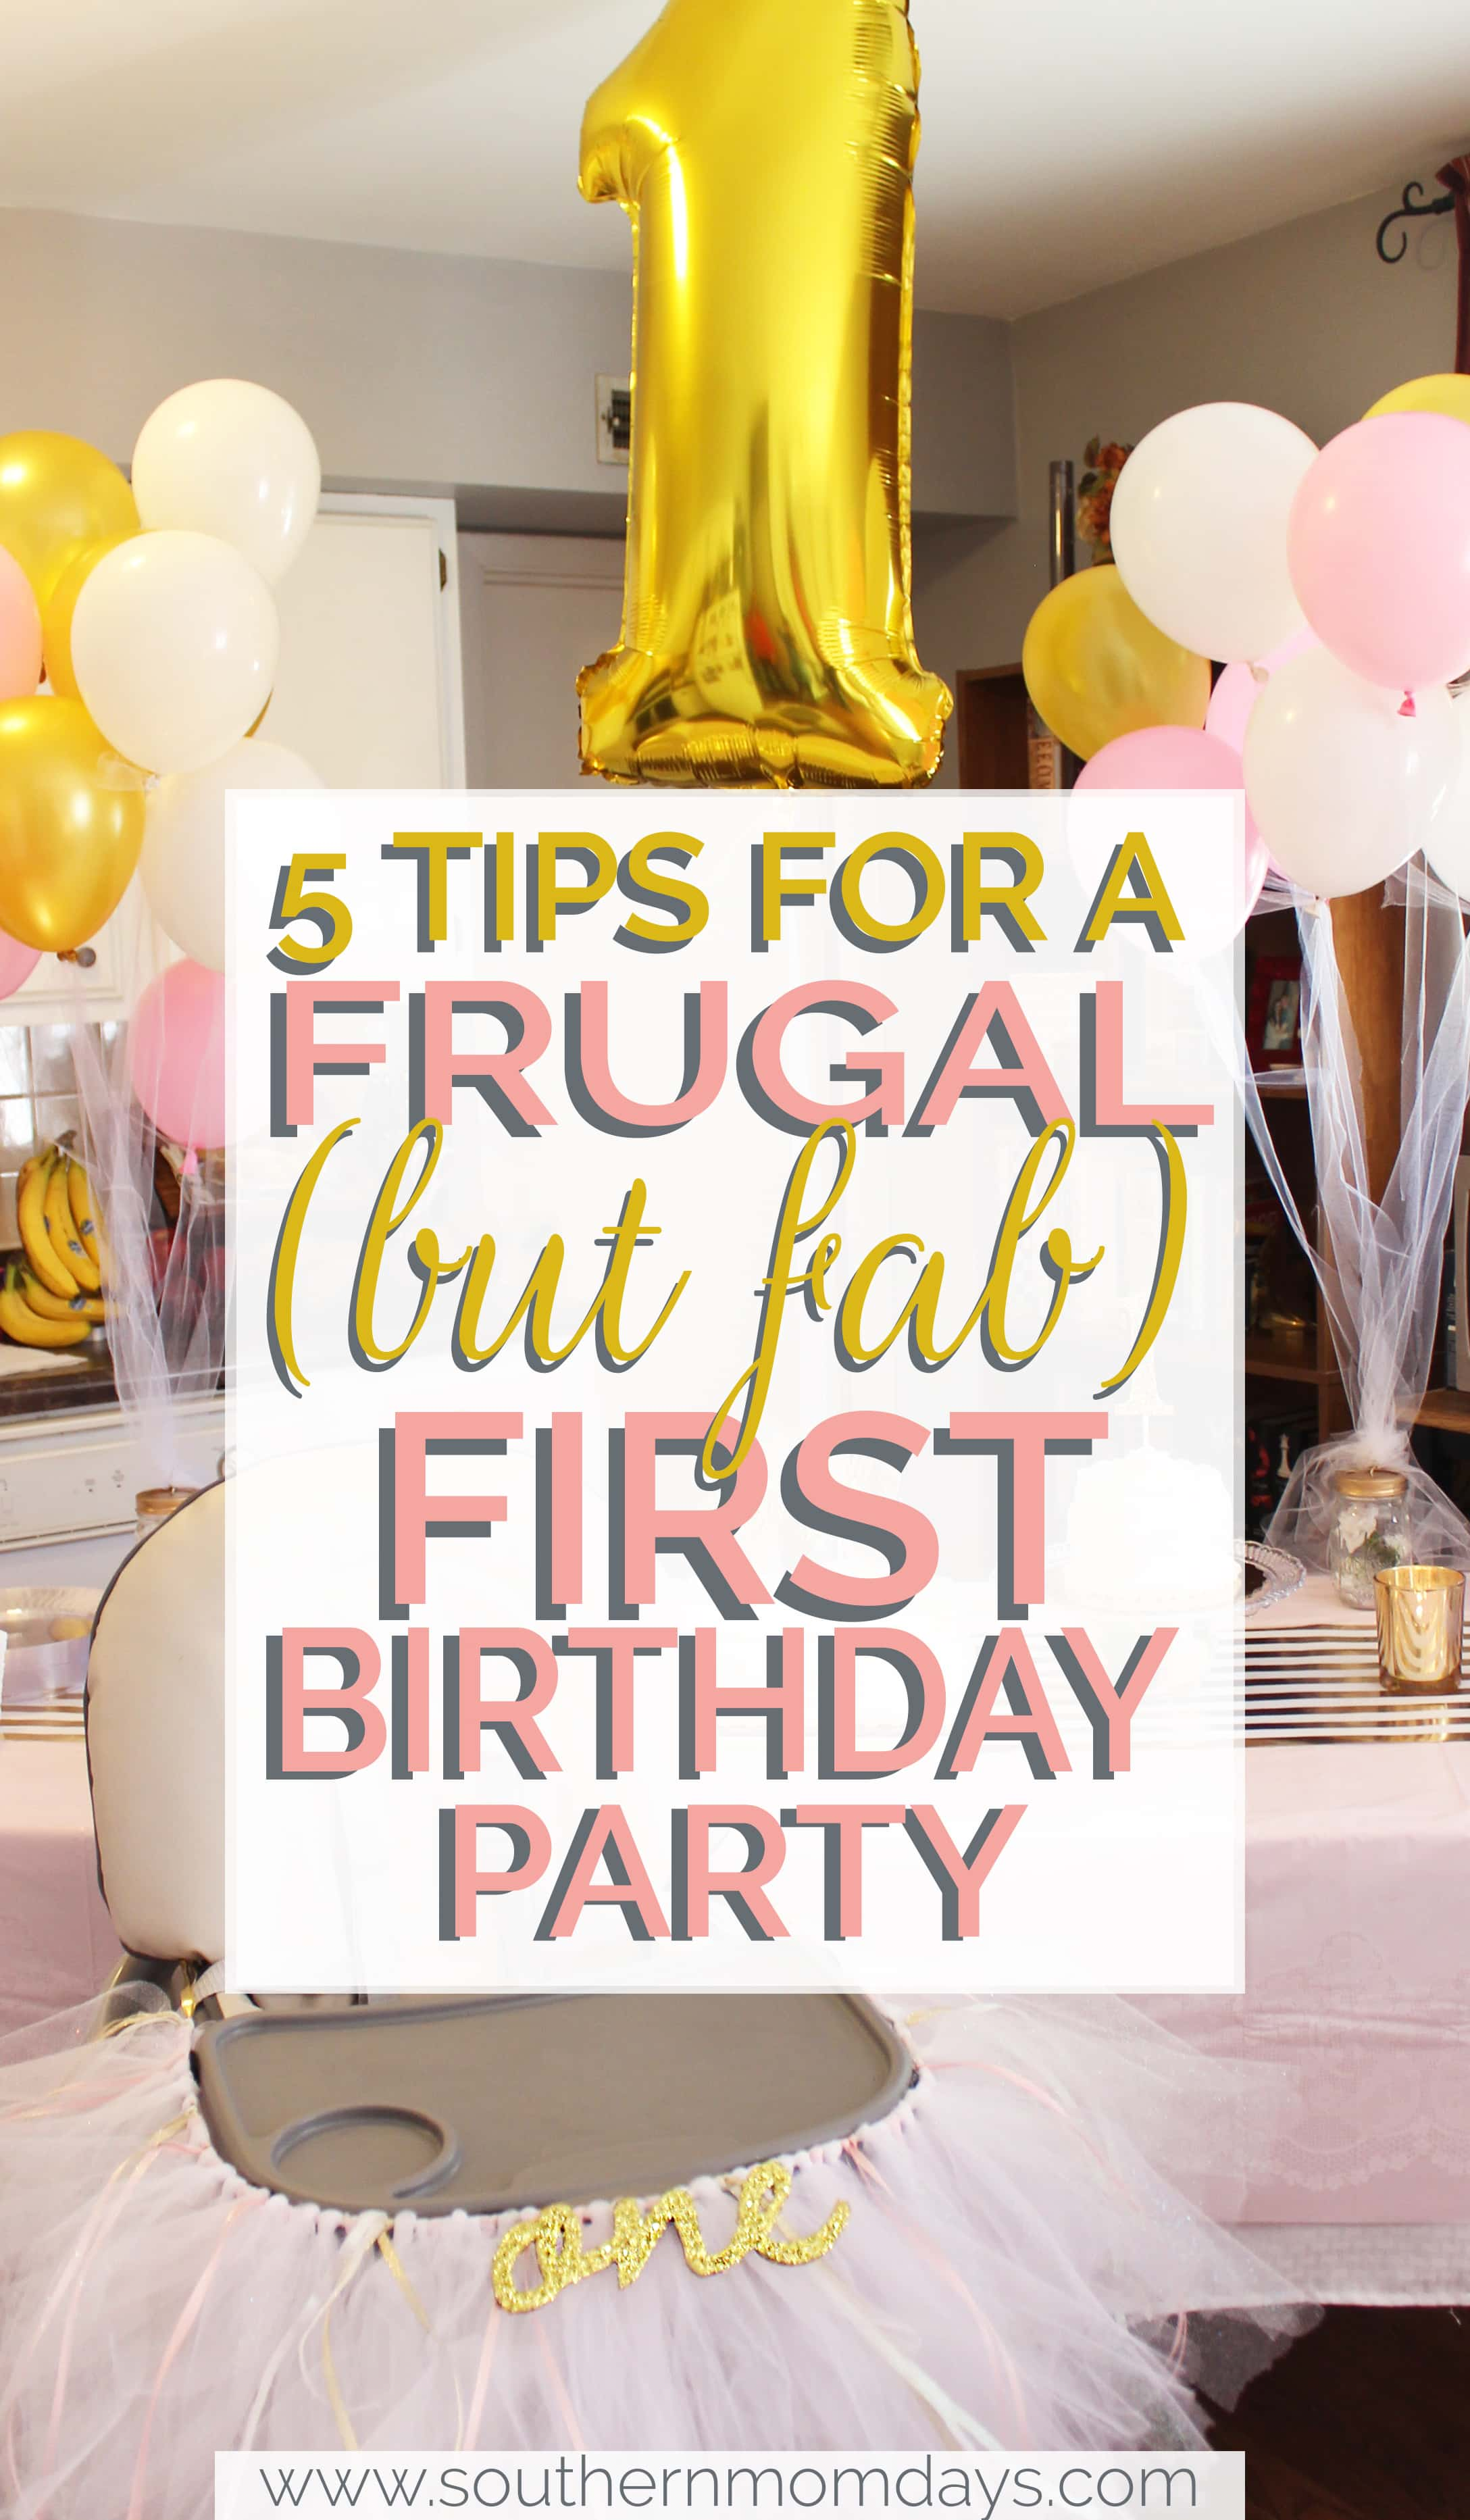 Discover 5 Tips For A Frugal But Fab First Birthday Party With DIY And